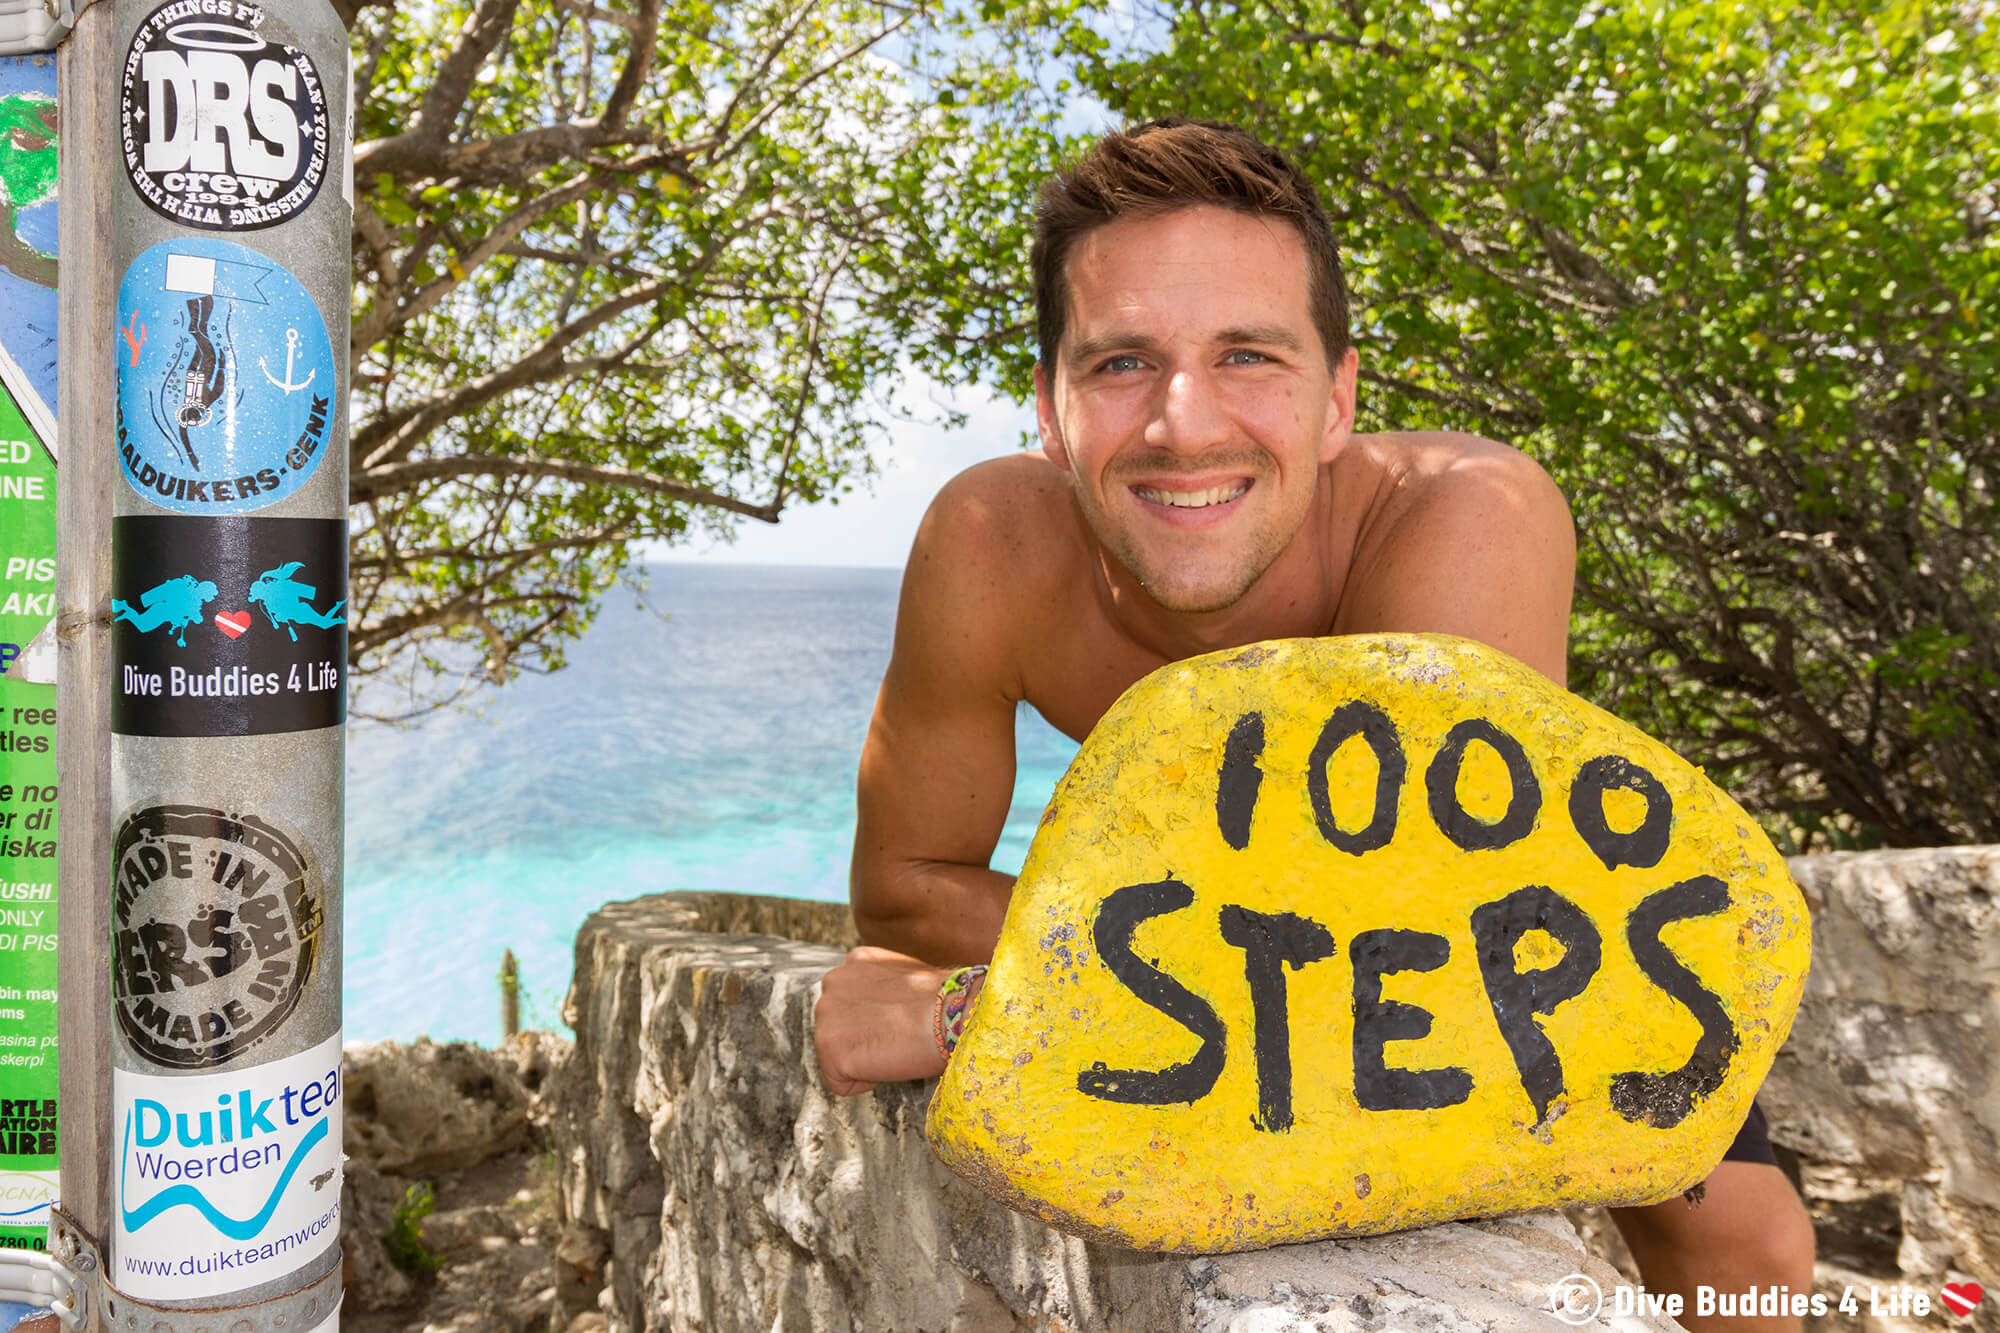 Joey At The 1000 Steps Dive Site On Bonaire, Scuba Diving The Dutch Caribbean